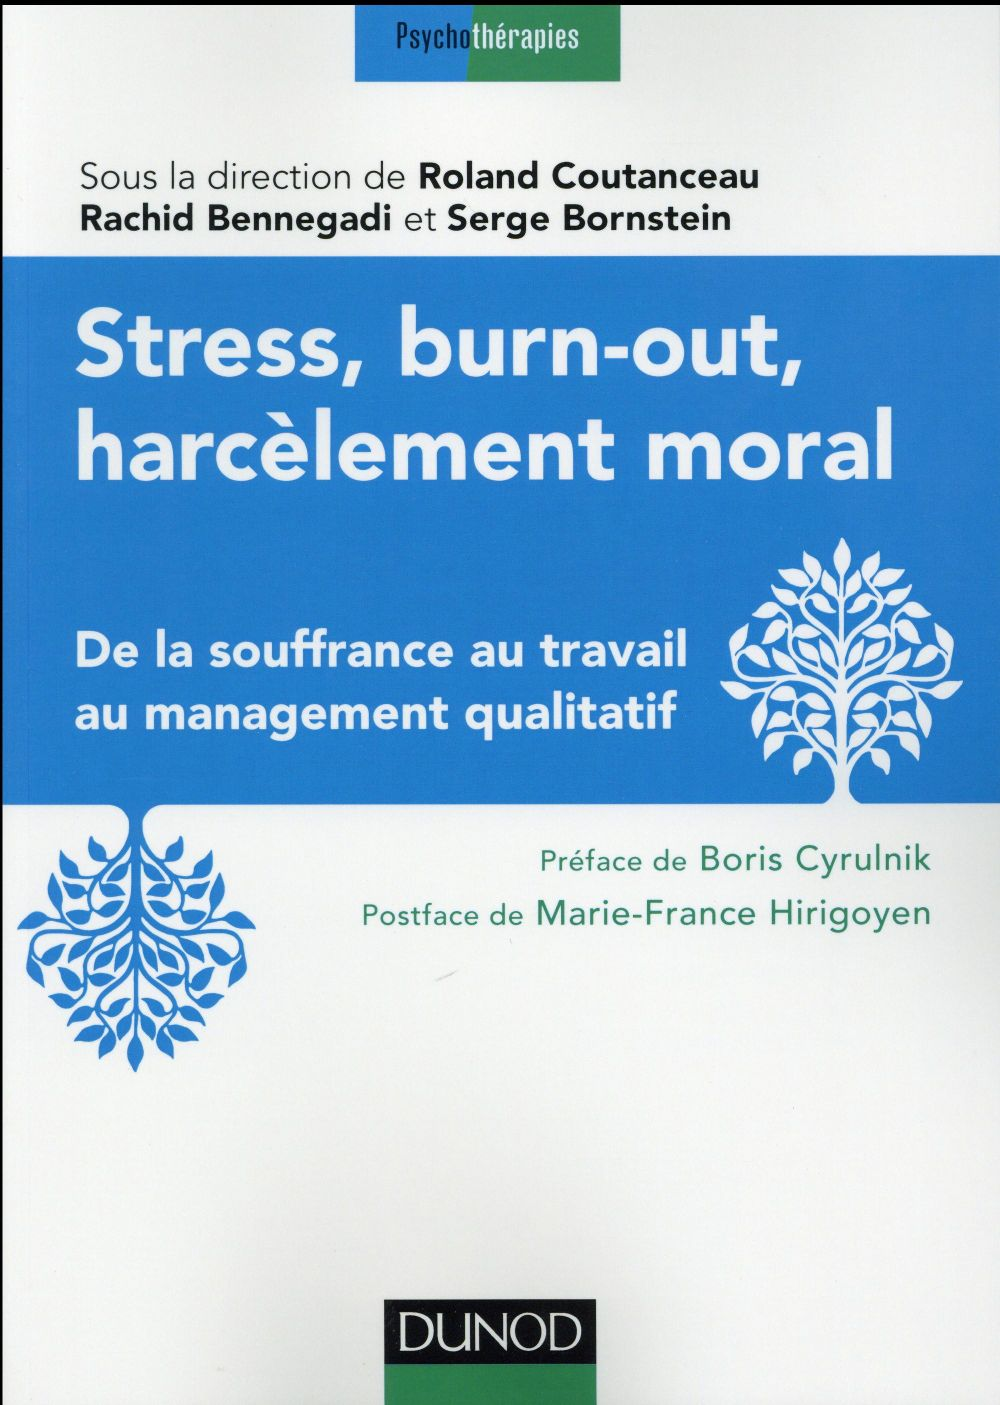 STRESS, BURN-OUT, HARCELEMENT MORAL - DE LA SOUFFRANCE AU TRAVAIL AU MANAGEMENT QUALITATIF